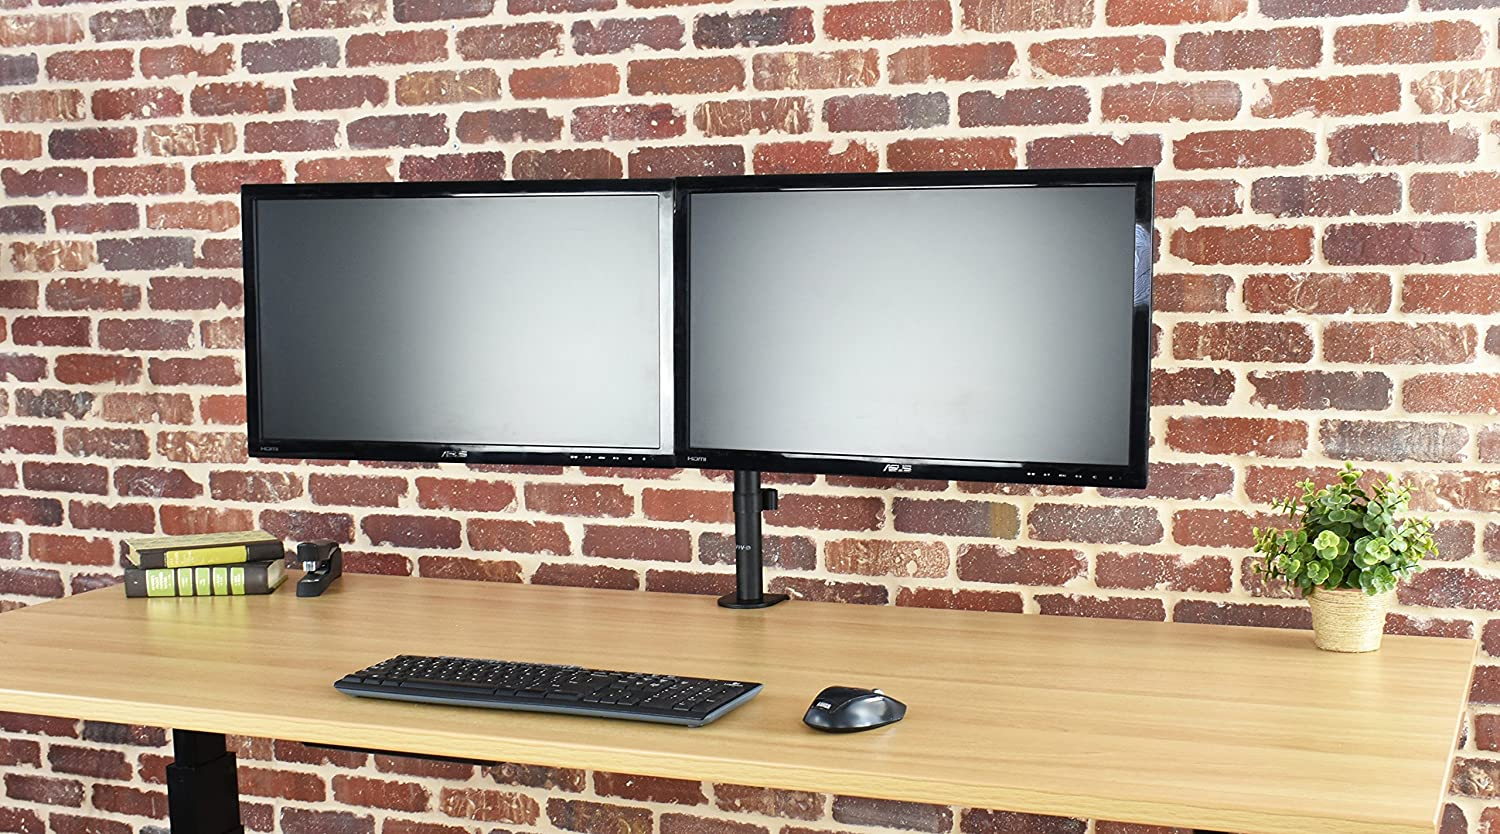 Amazon com vivo triple lcd monitor desk mount stand heavy duty fully - Amazon Com Vivo Dual Lcd Led Monitor Desk Mount Stand Heavy Duty Fully Adjustable Fits 2 Two Screens Up To 27 Computers Accessories